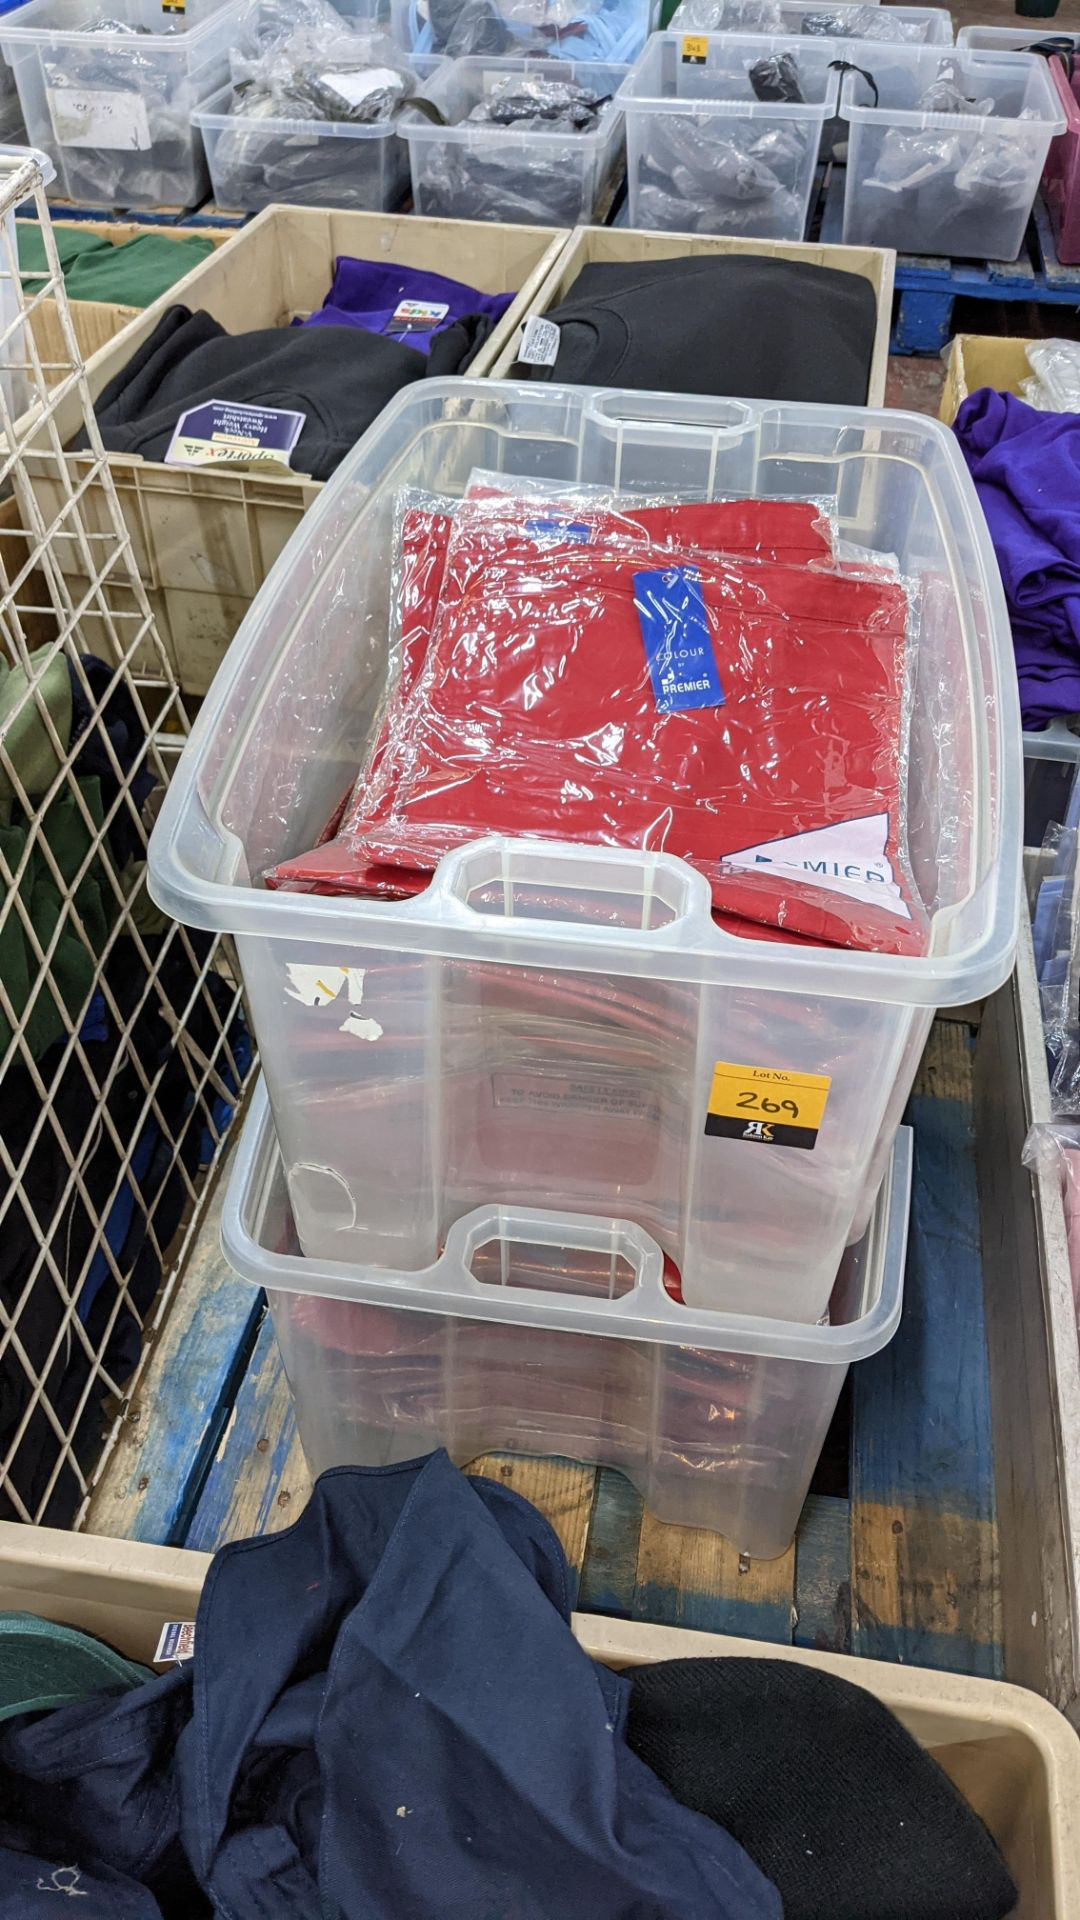 Approx 60 off red aprons - the contents of 2 crates. NB crates excluded